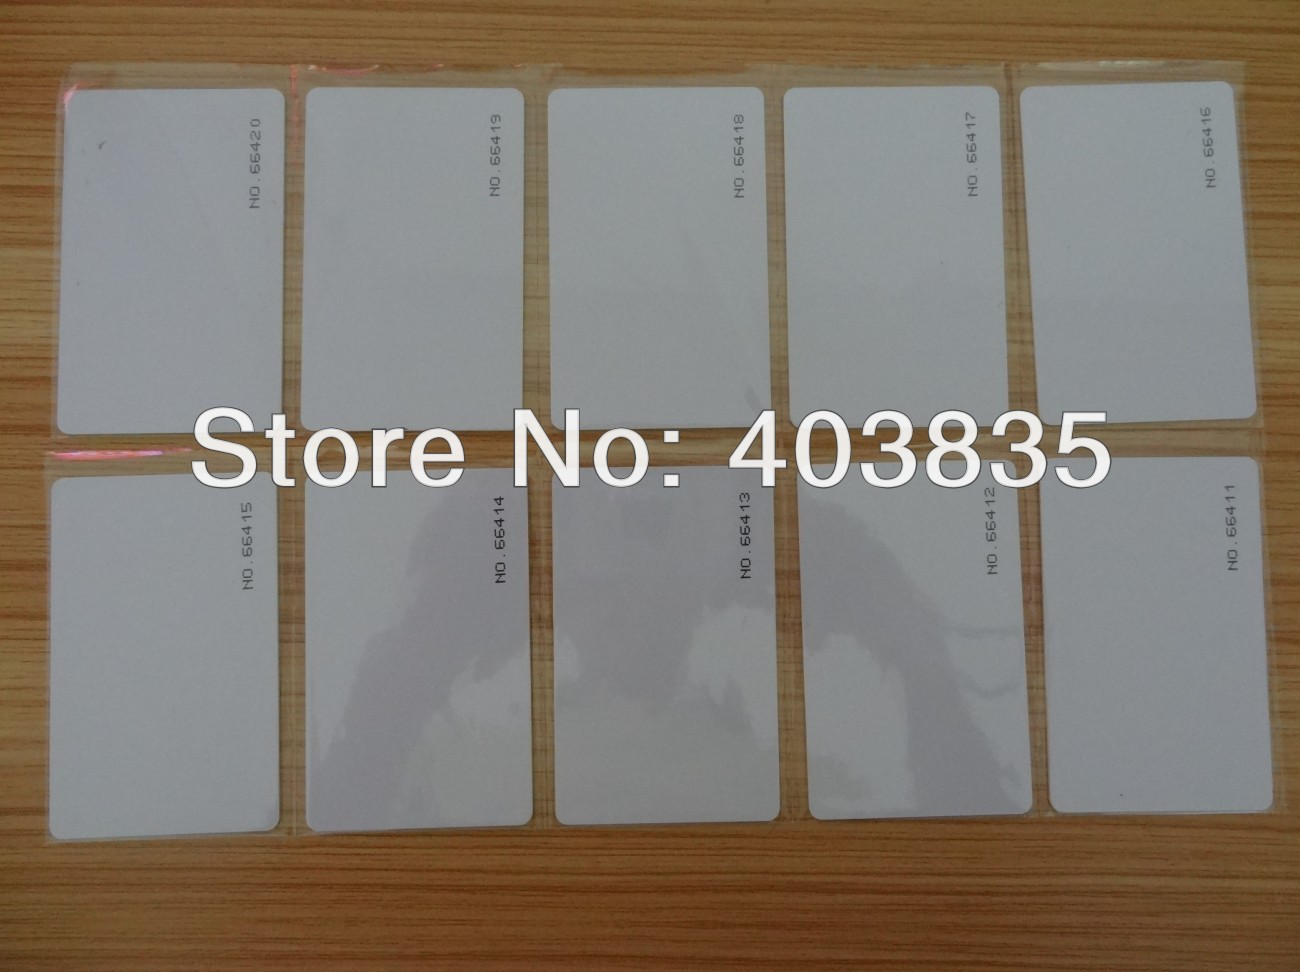 2 -12 Meter Long Range UHF Card UHF RFID Cards With Frequency: 860~960MHz Reading